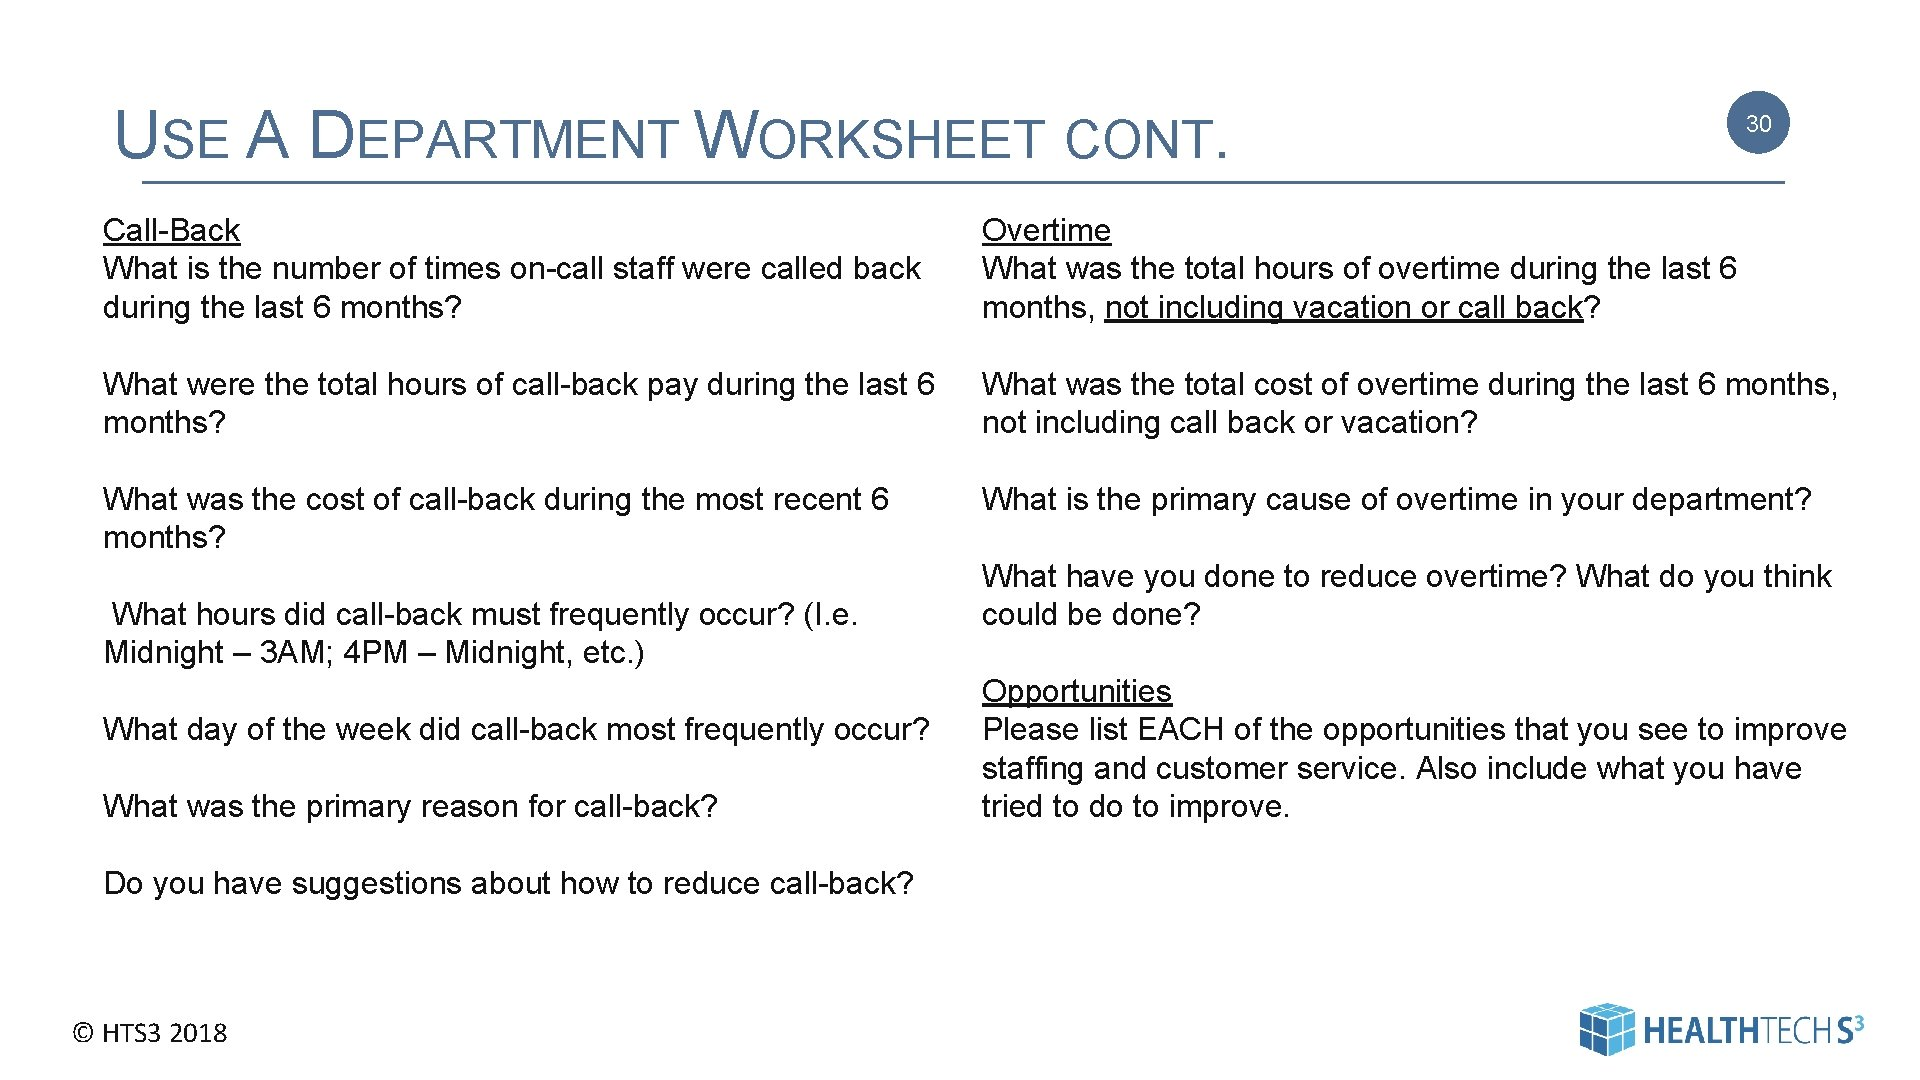 USE A DEPARTMENT WORKSHEET CONT. 30 Call-Back What is the number of times on-call